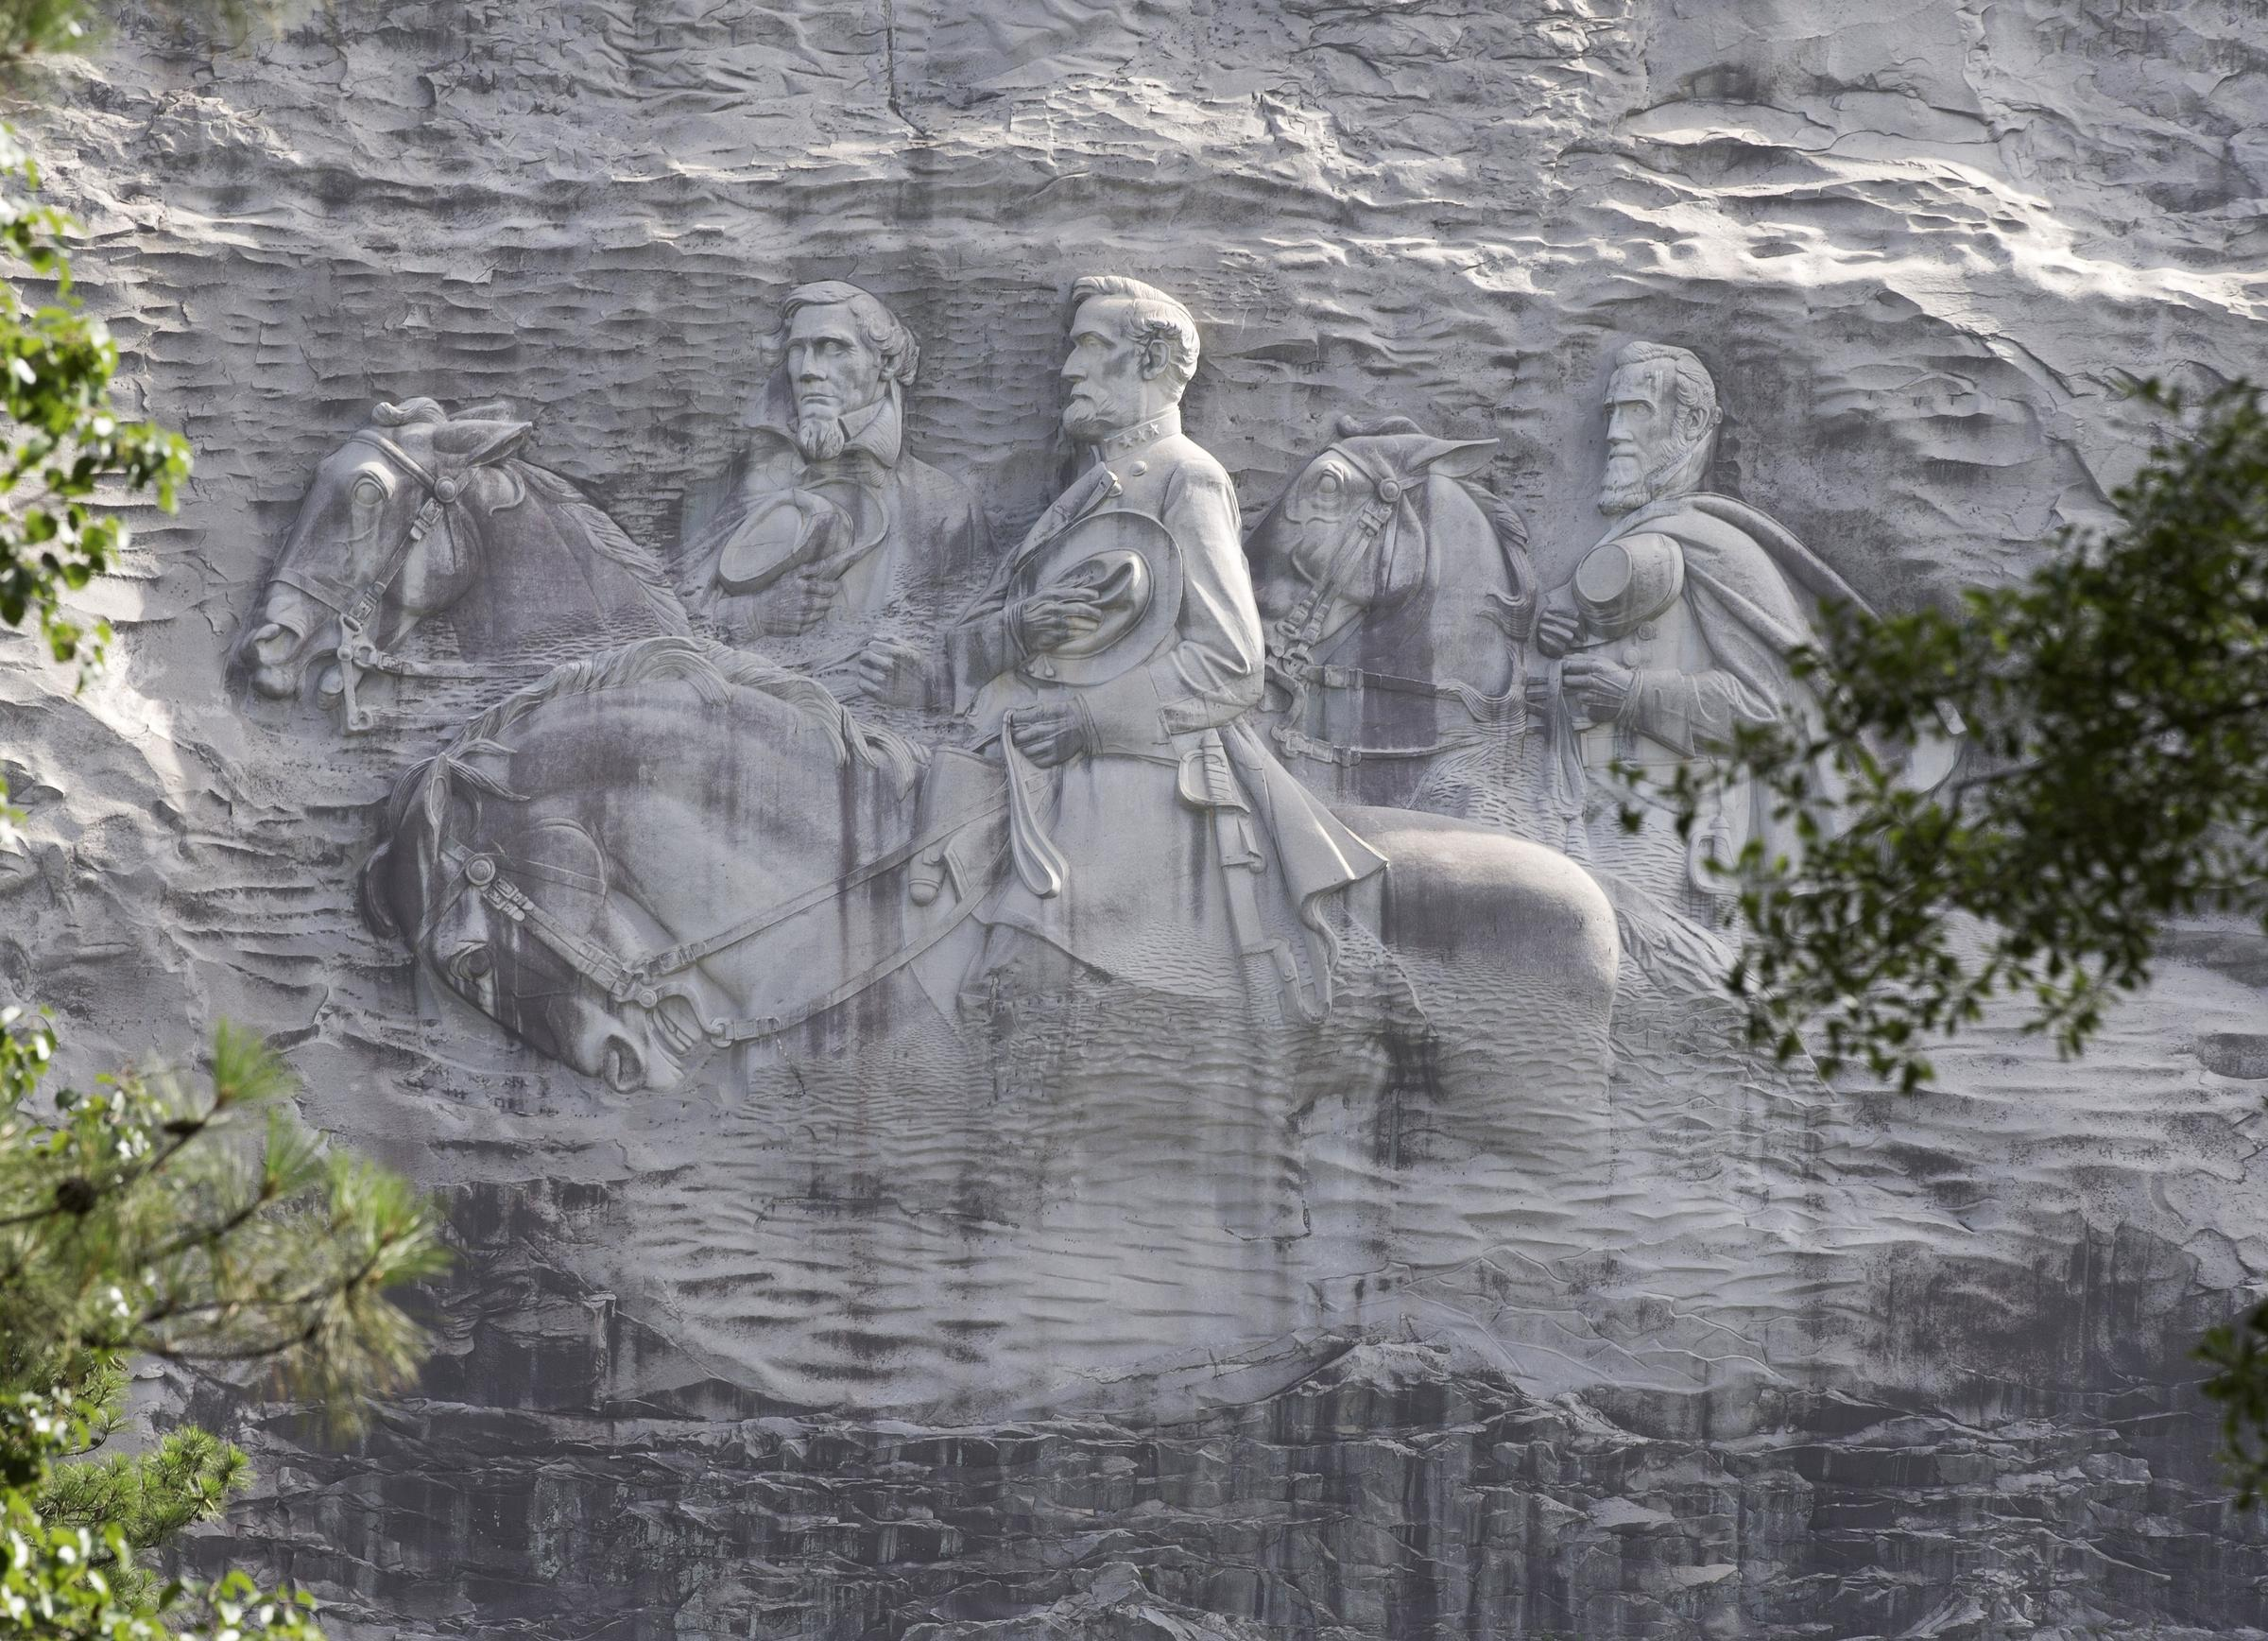 Renewed calls to remove carvings on stone mountain wabe fm